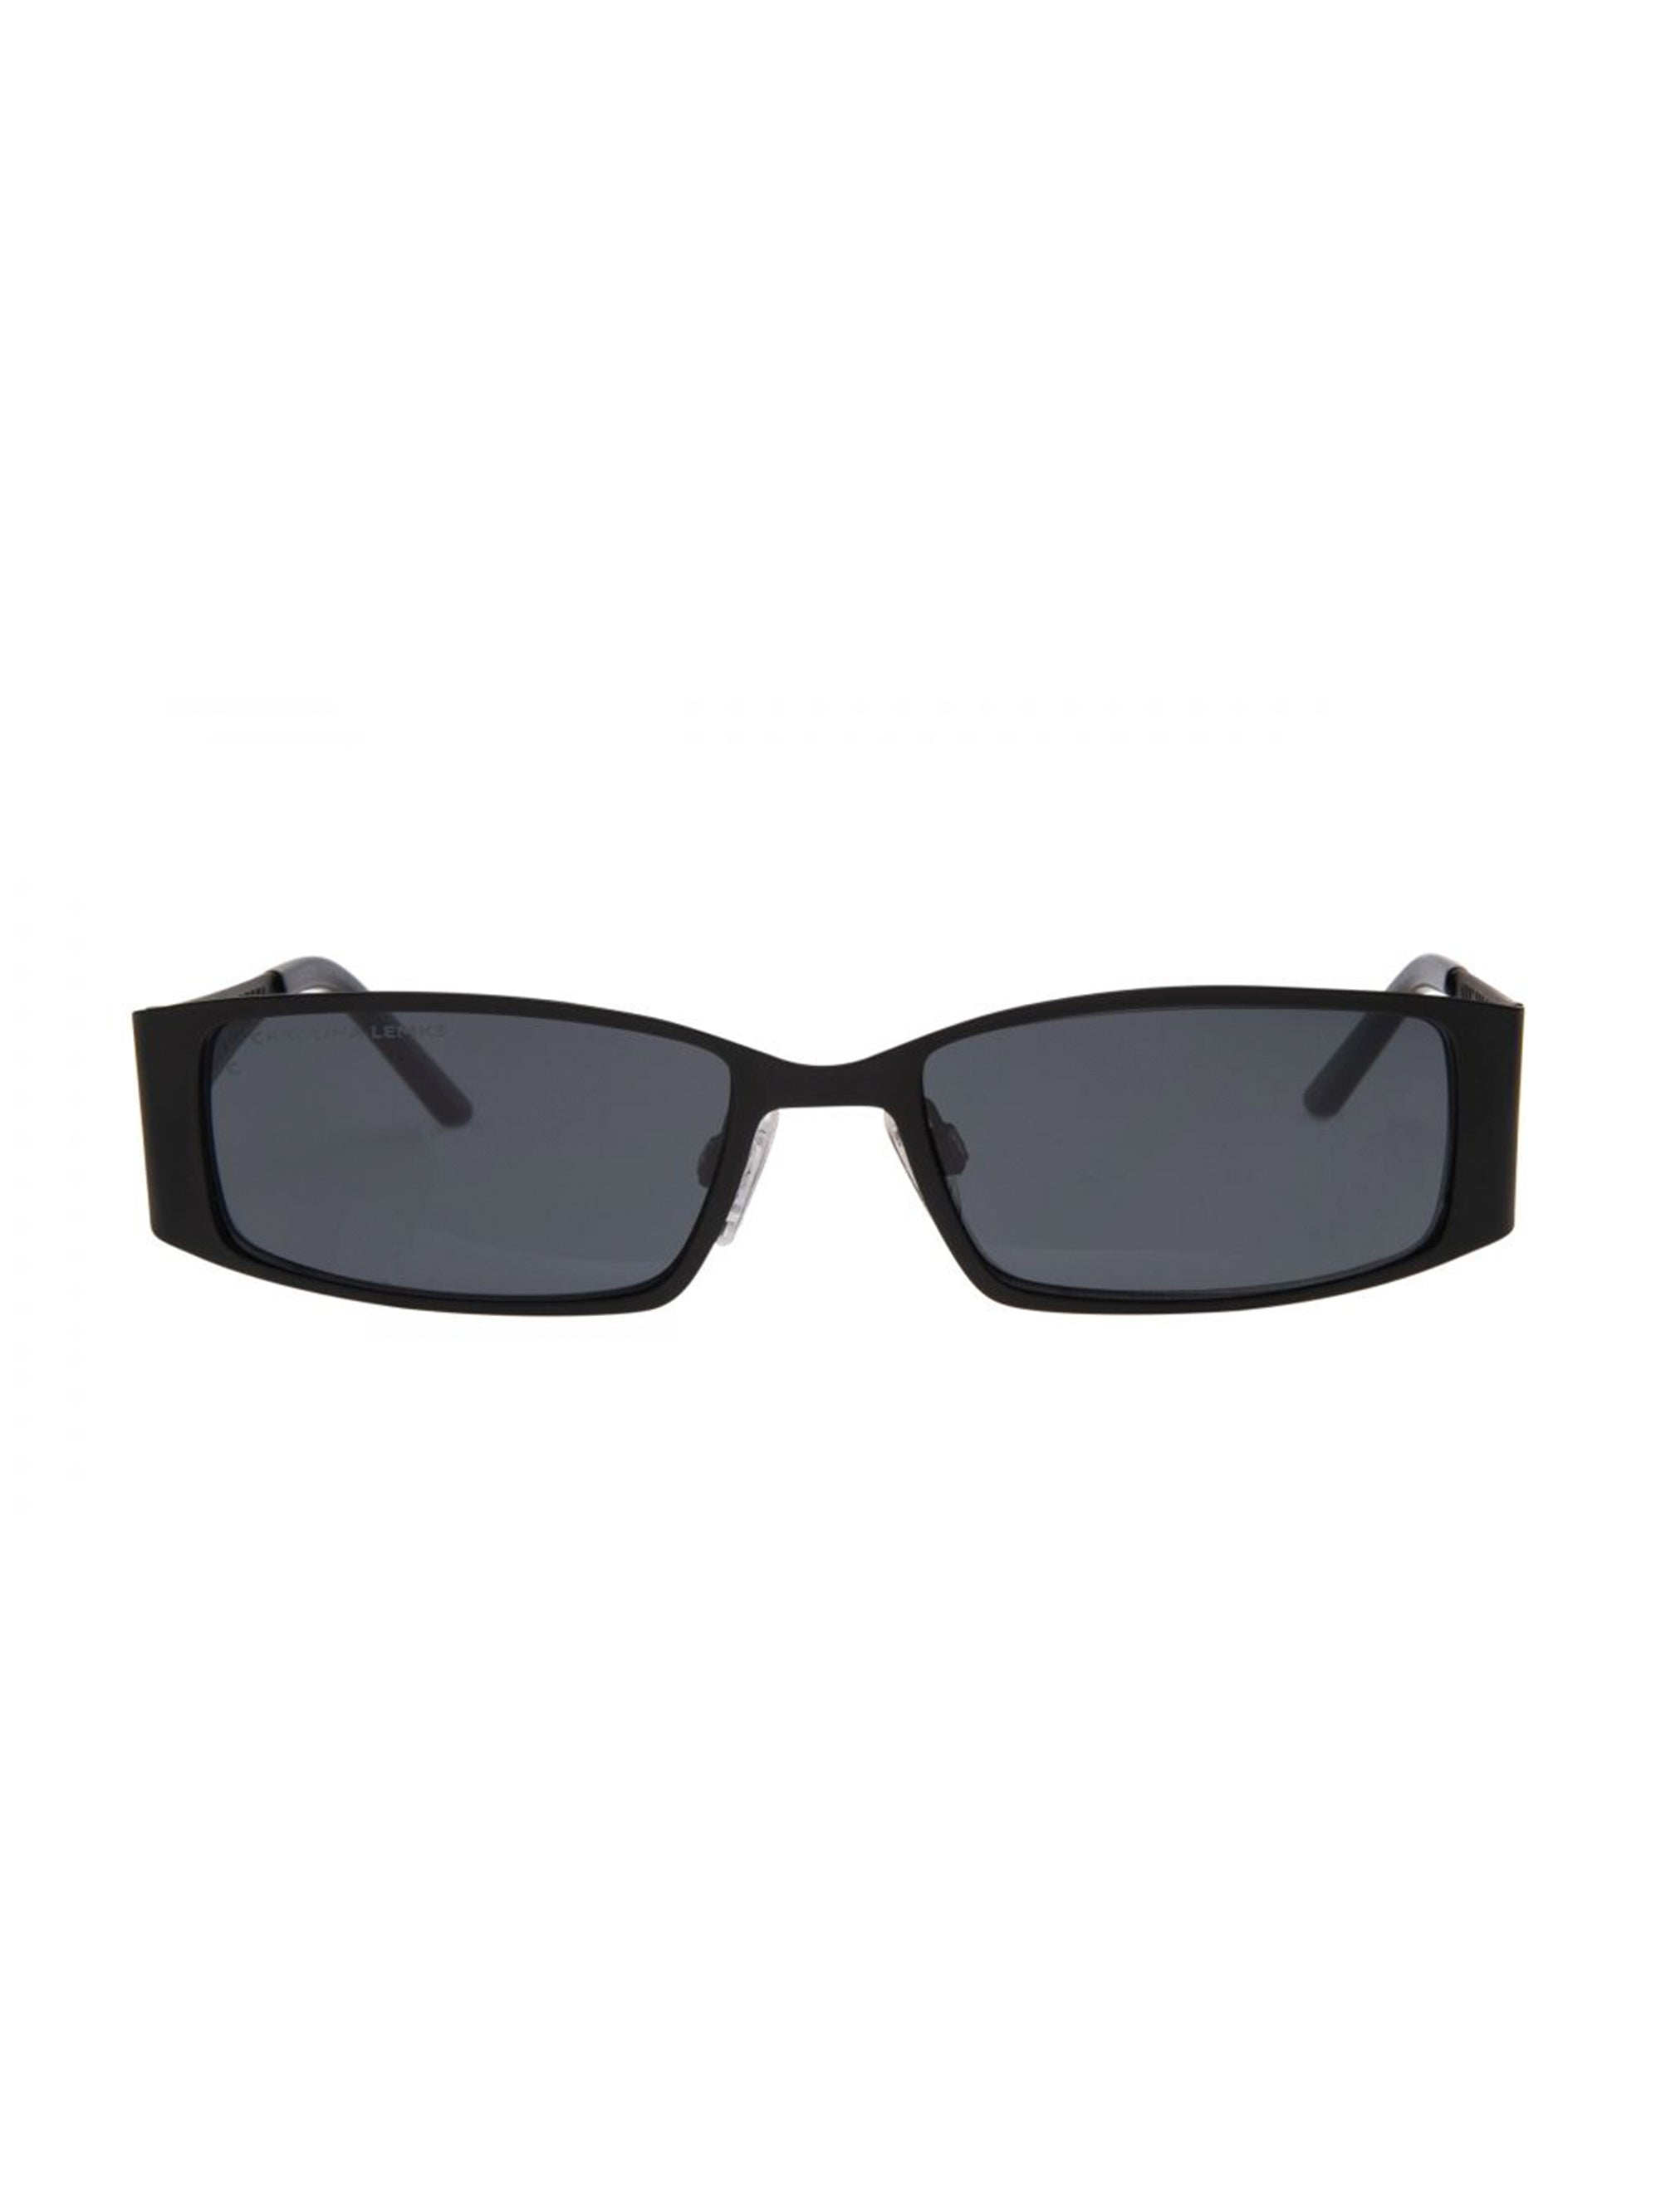 Lentes Carolina Lemke CL6707 01